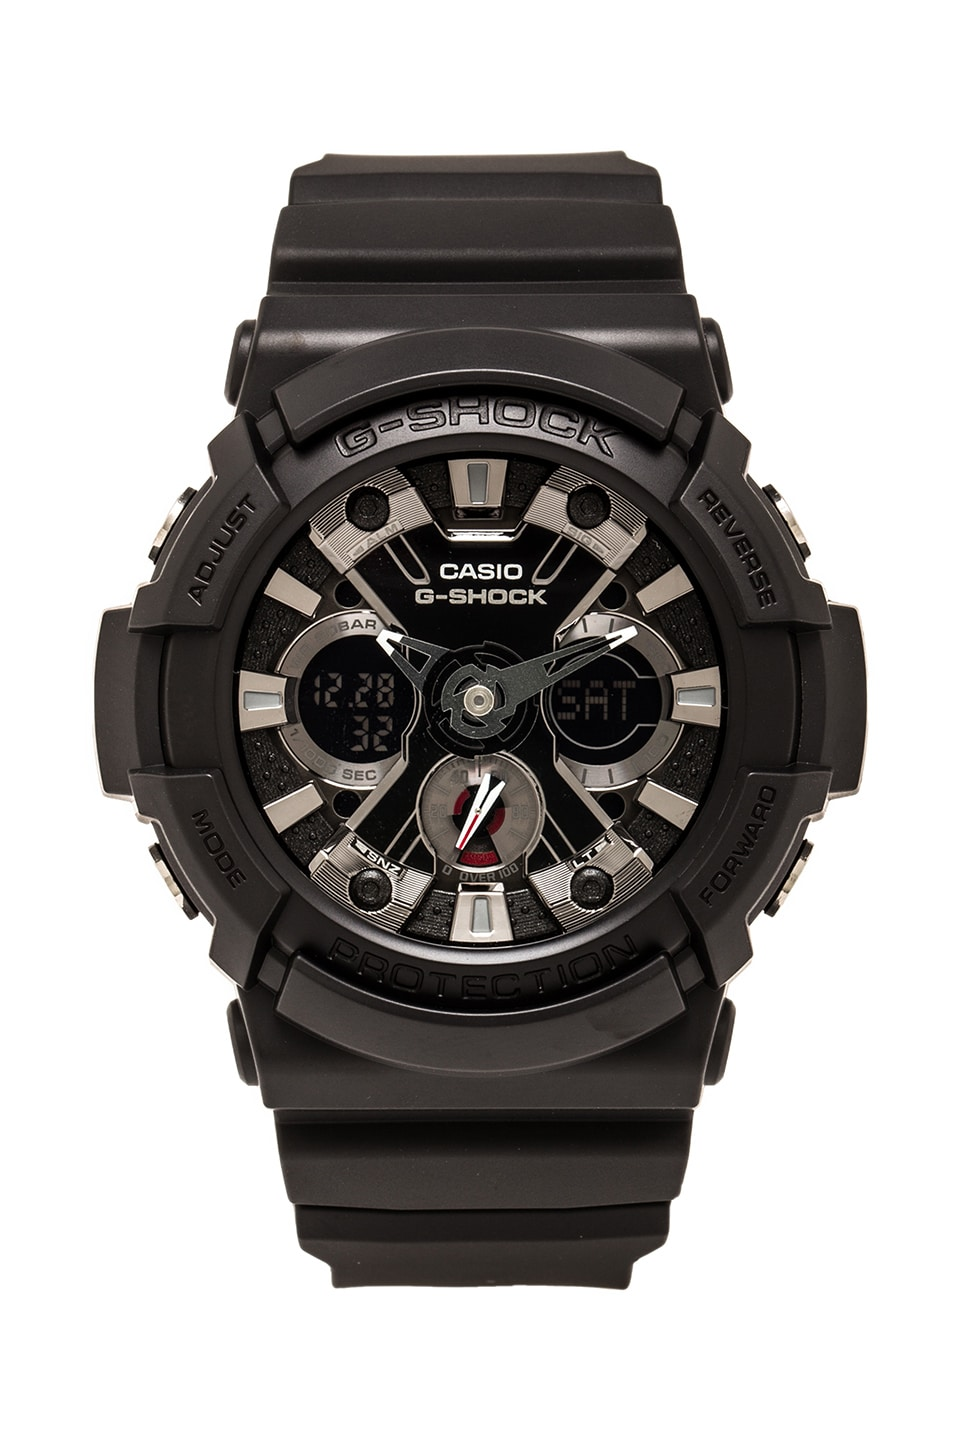 G-Shock Big Combi w/ Metal Accents in Black